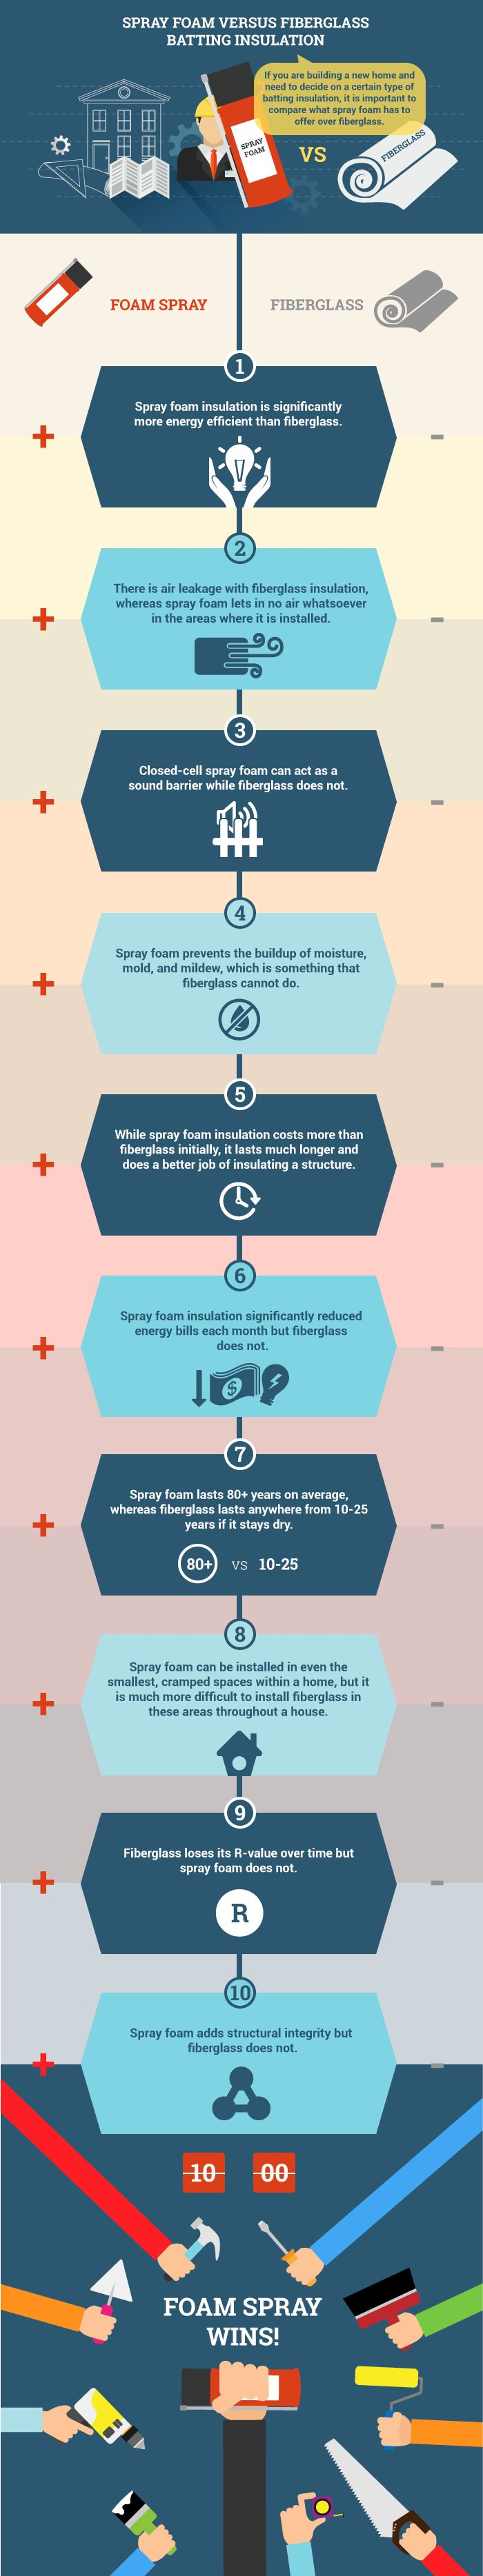 This infographic is for those of you looking to build a new home and need to decide on a type of insulation. This information will give you more insight into the benefits of Spray foam insulation vs Fiberglass insulation. Provided by Dixie Foam, your insulation contractors for Mississippi.